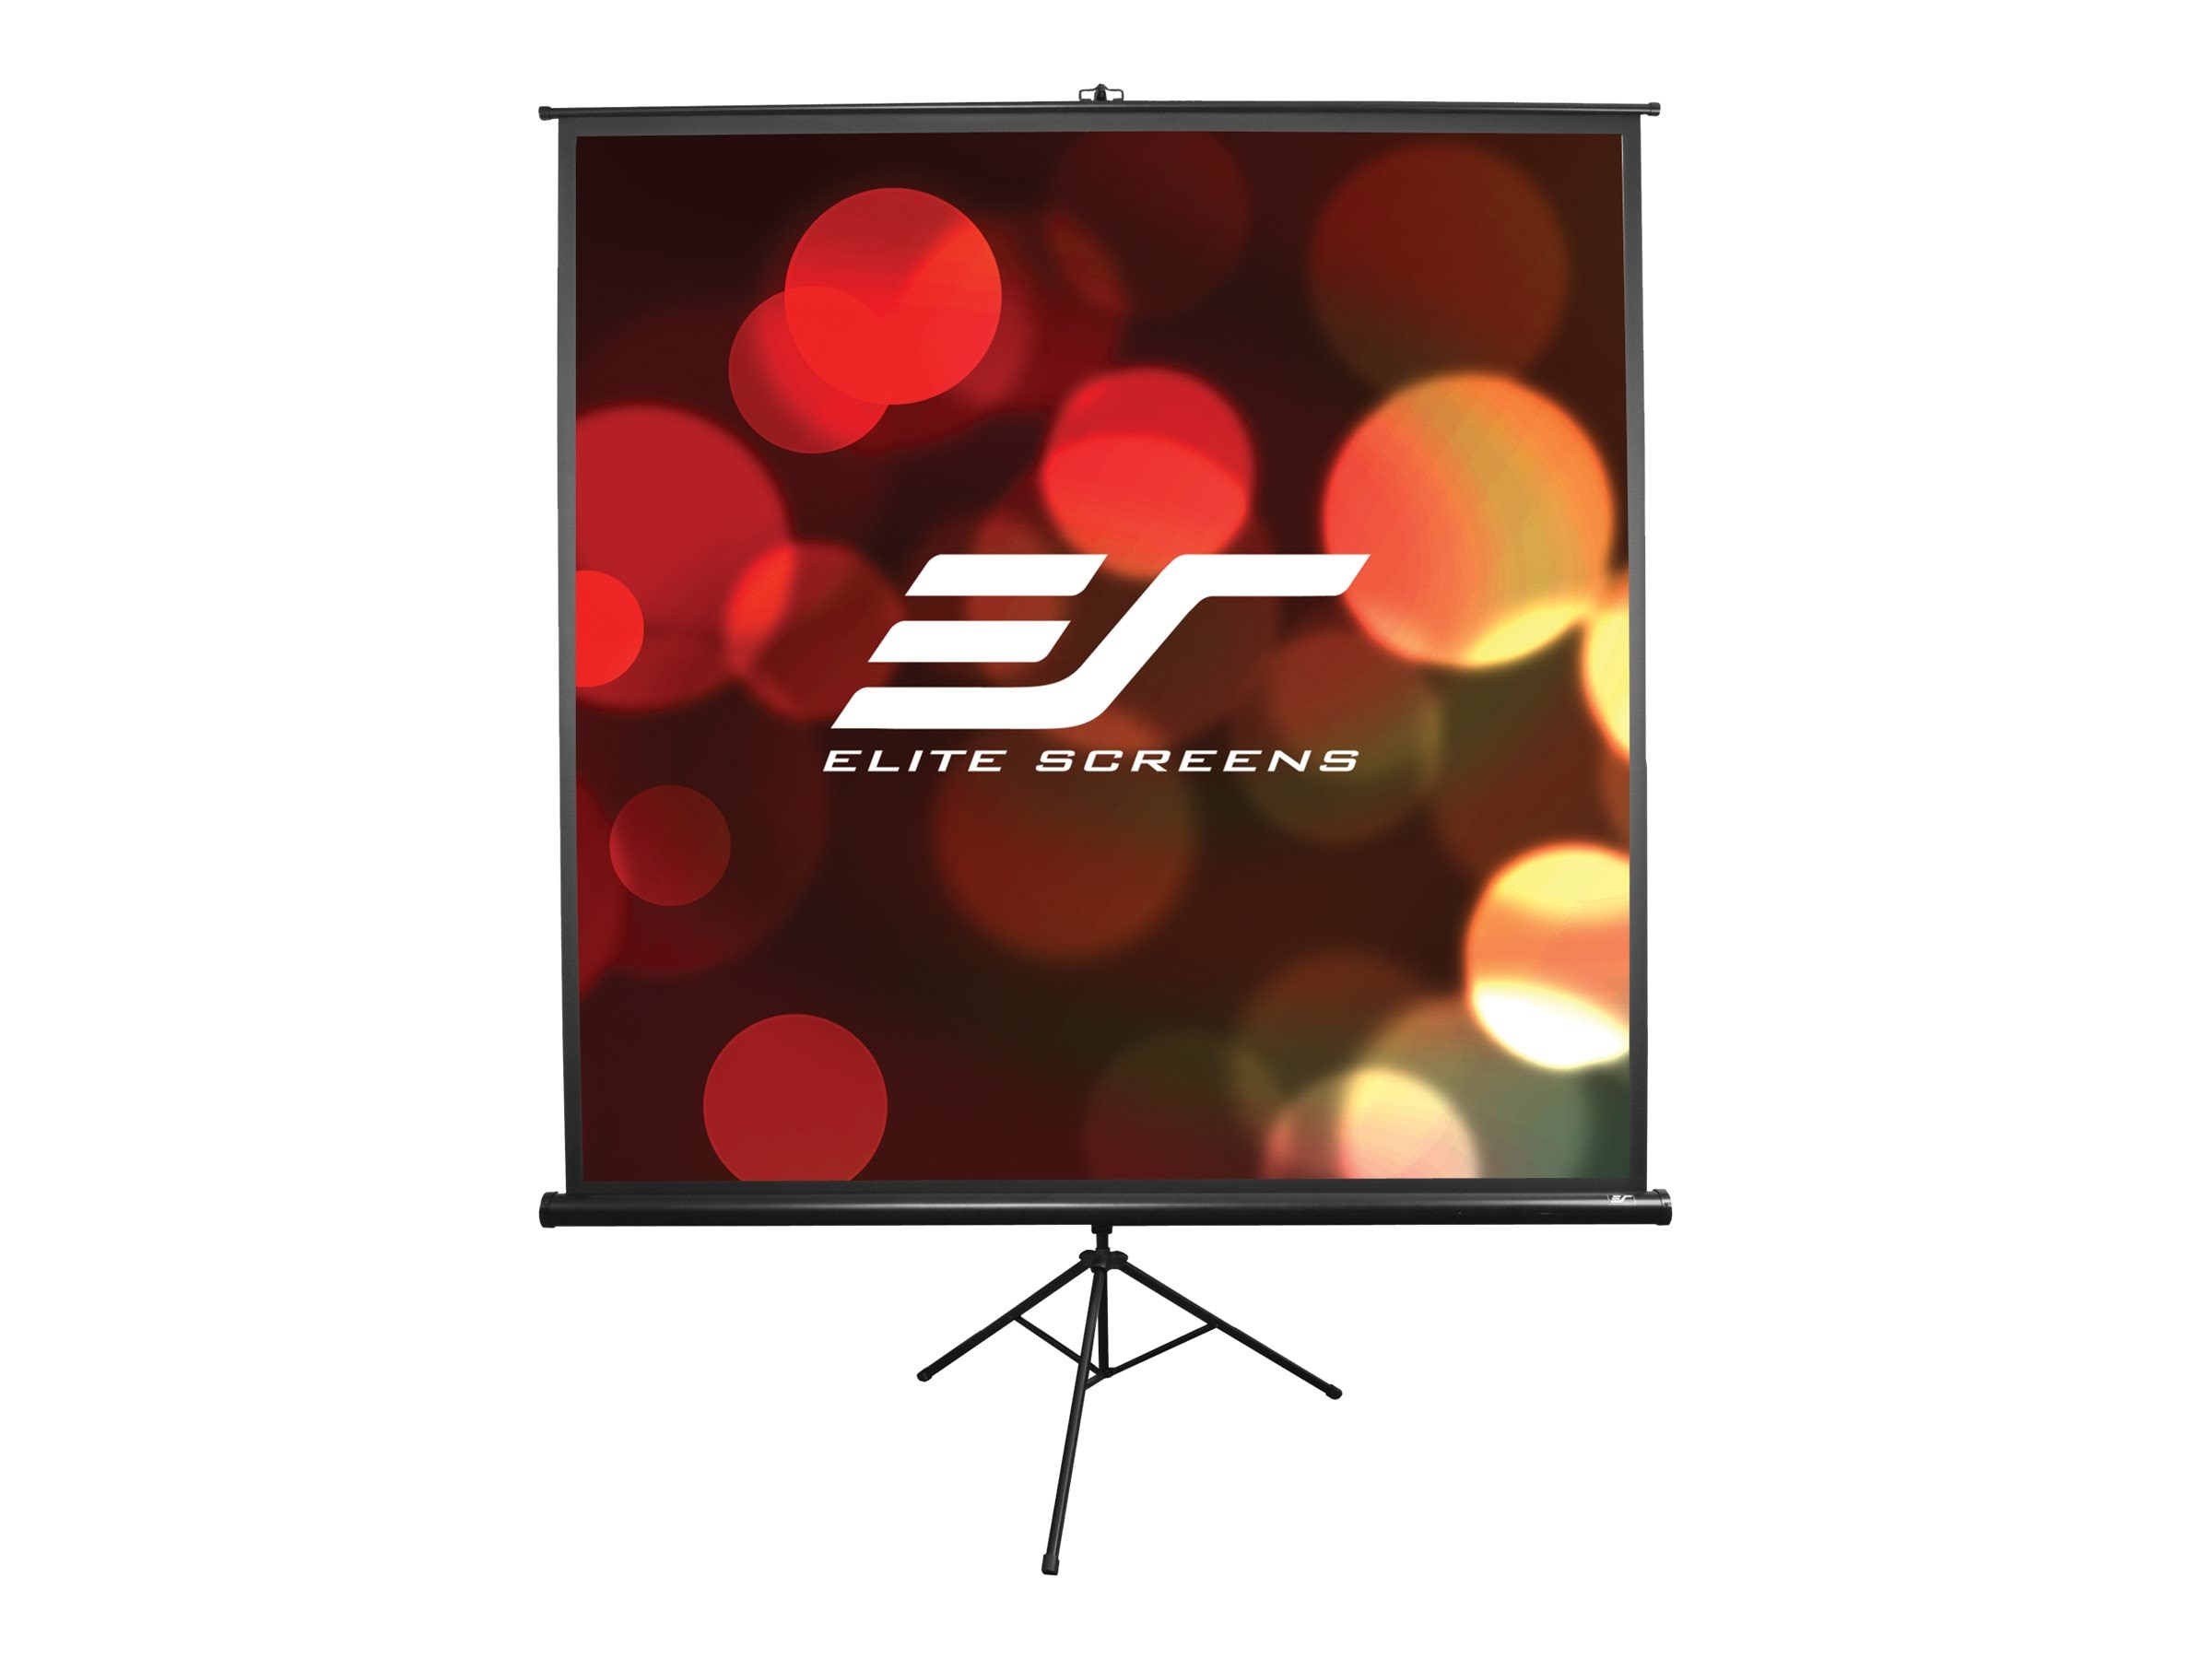 Elite Screens T71UWS1 Image 1